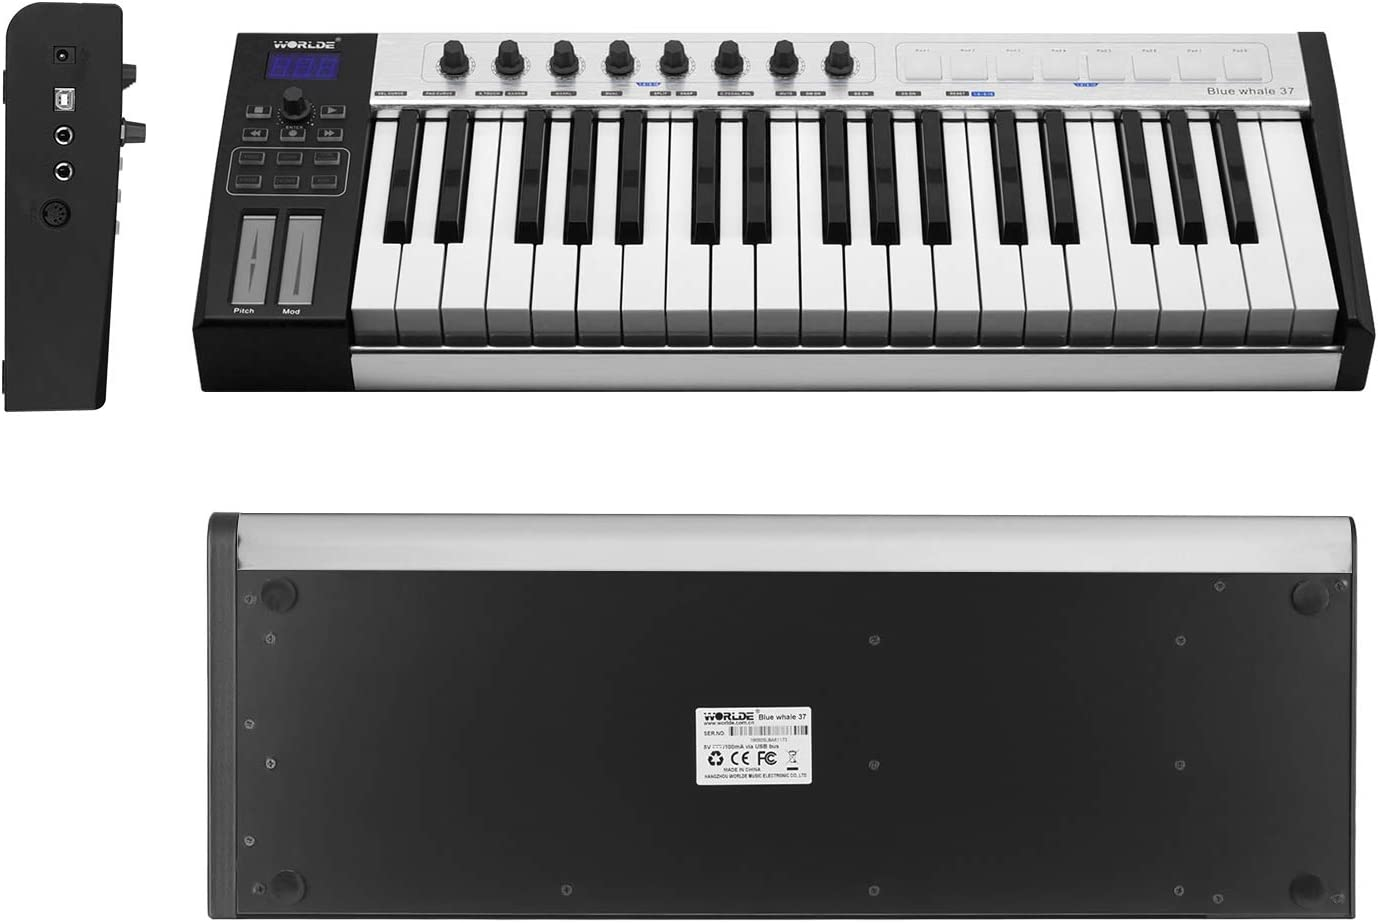 WORLDE Blue whale 37 Portable USB MIDI Controller Keyboard 37 Semi-weighted  Keys 8 RGB Backlit Trigger Pads LED Display with USB Cable: Amazon.co.uk:  Musical Instruments